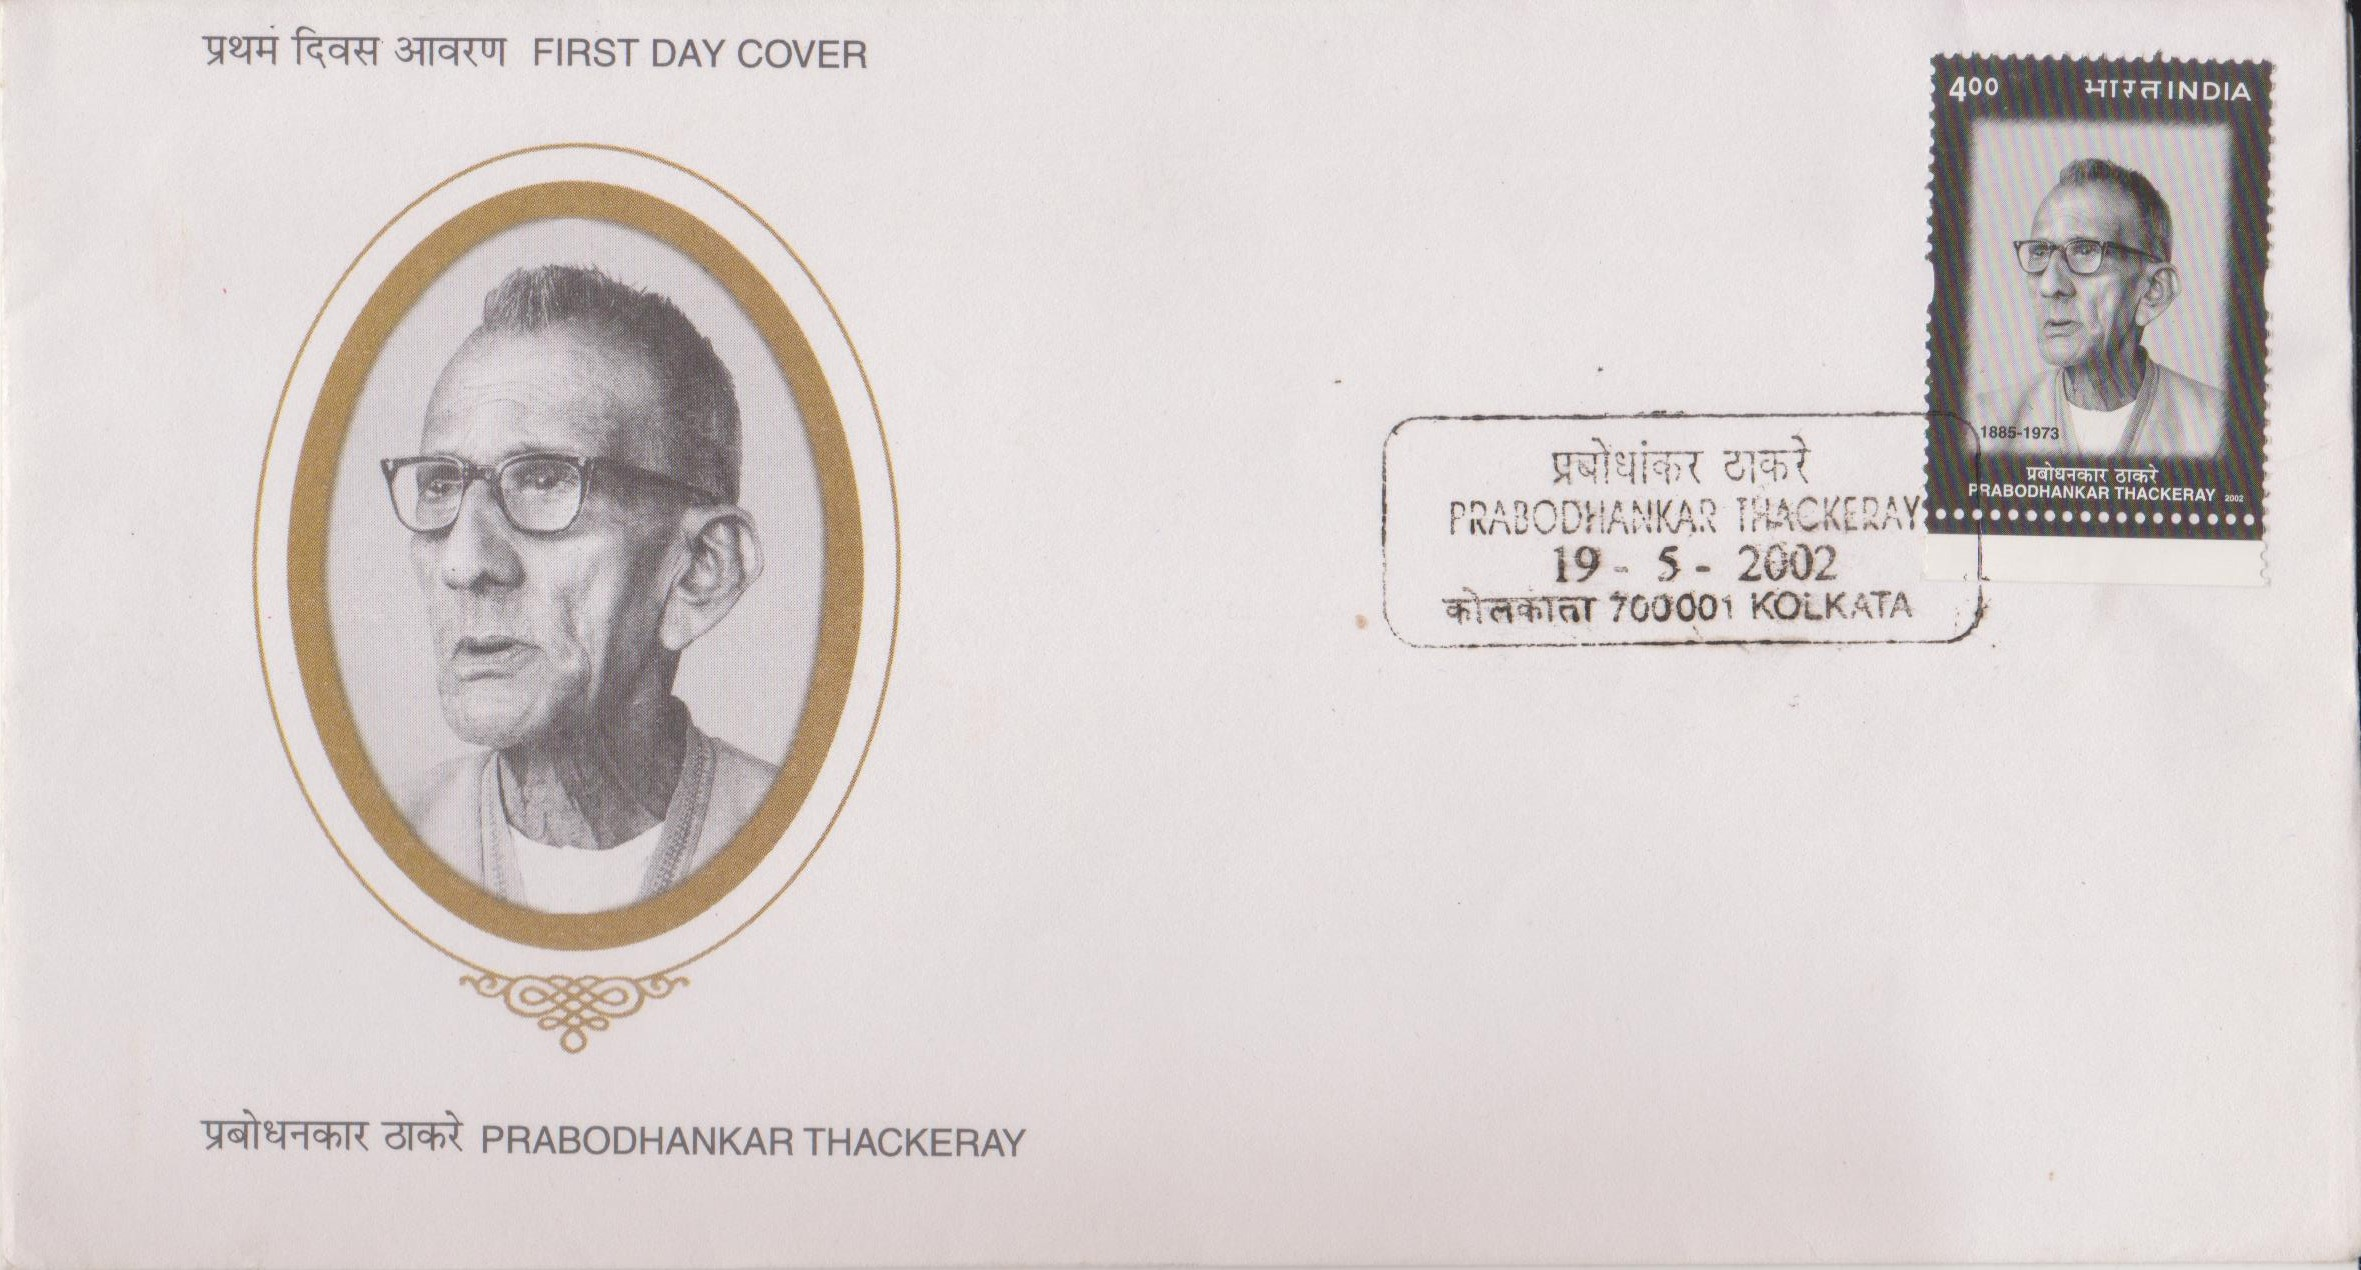 Prabodhankar Thackeray : Father of Bal Thackeray (Shiv Sena)